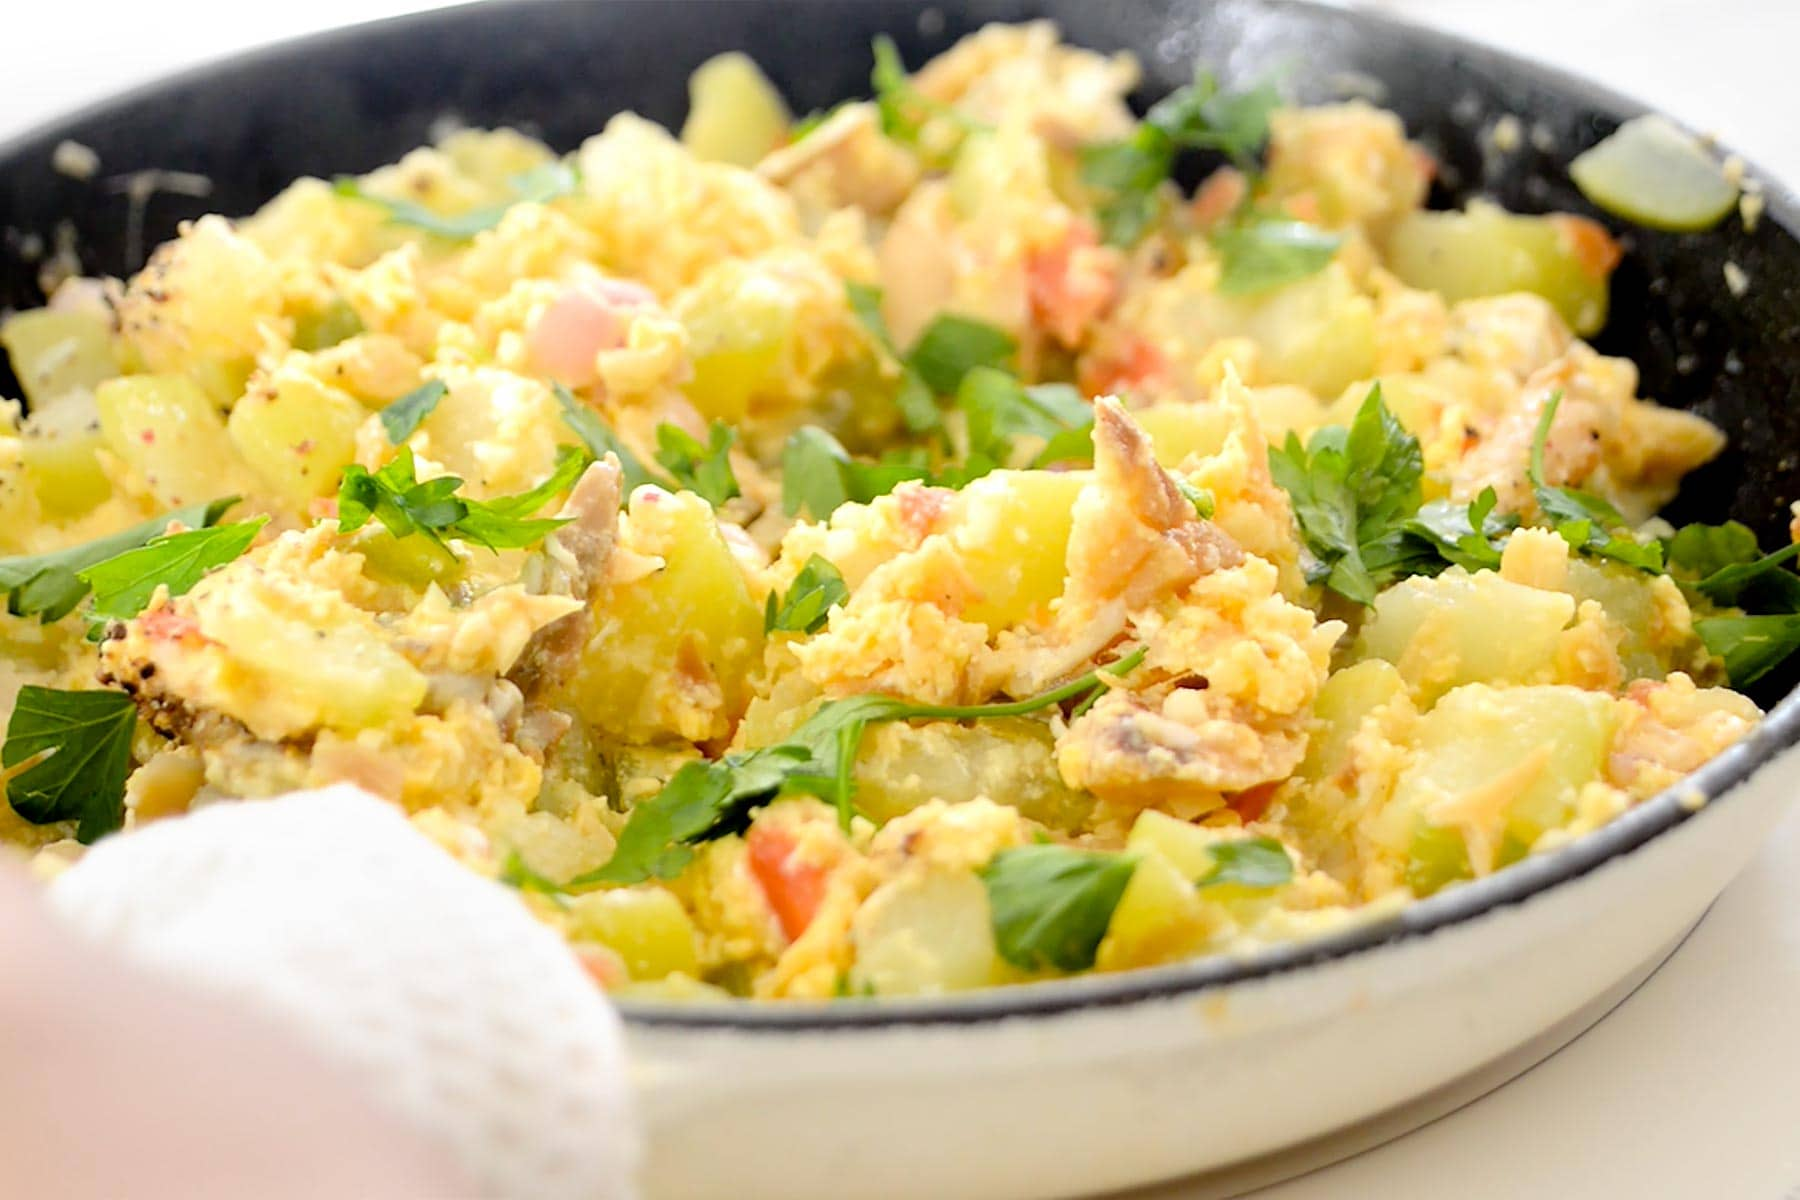 Pan with codifish, egg and chayote ready